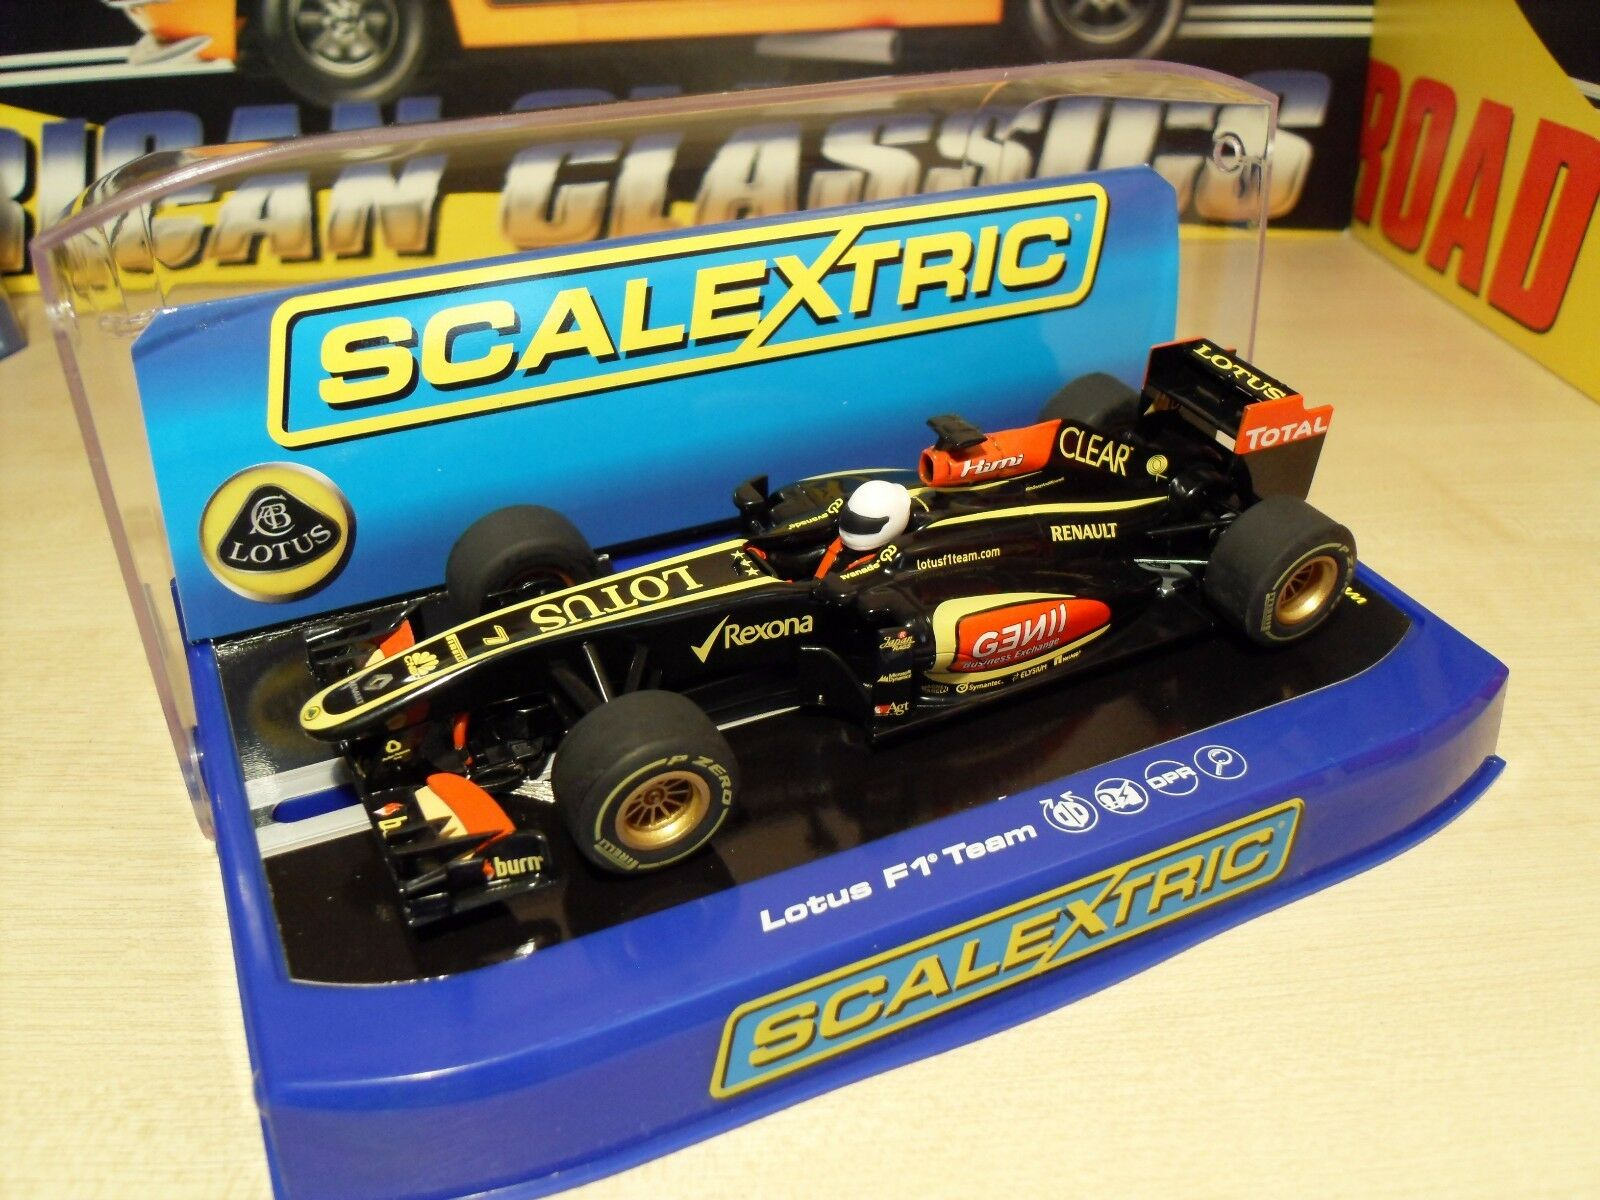 Scalextric C3364 Lotus F1 Team 2013 'Kimi Raikkonen' - Brand New in Box.